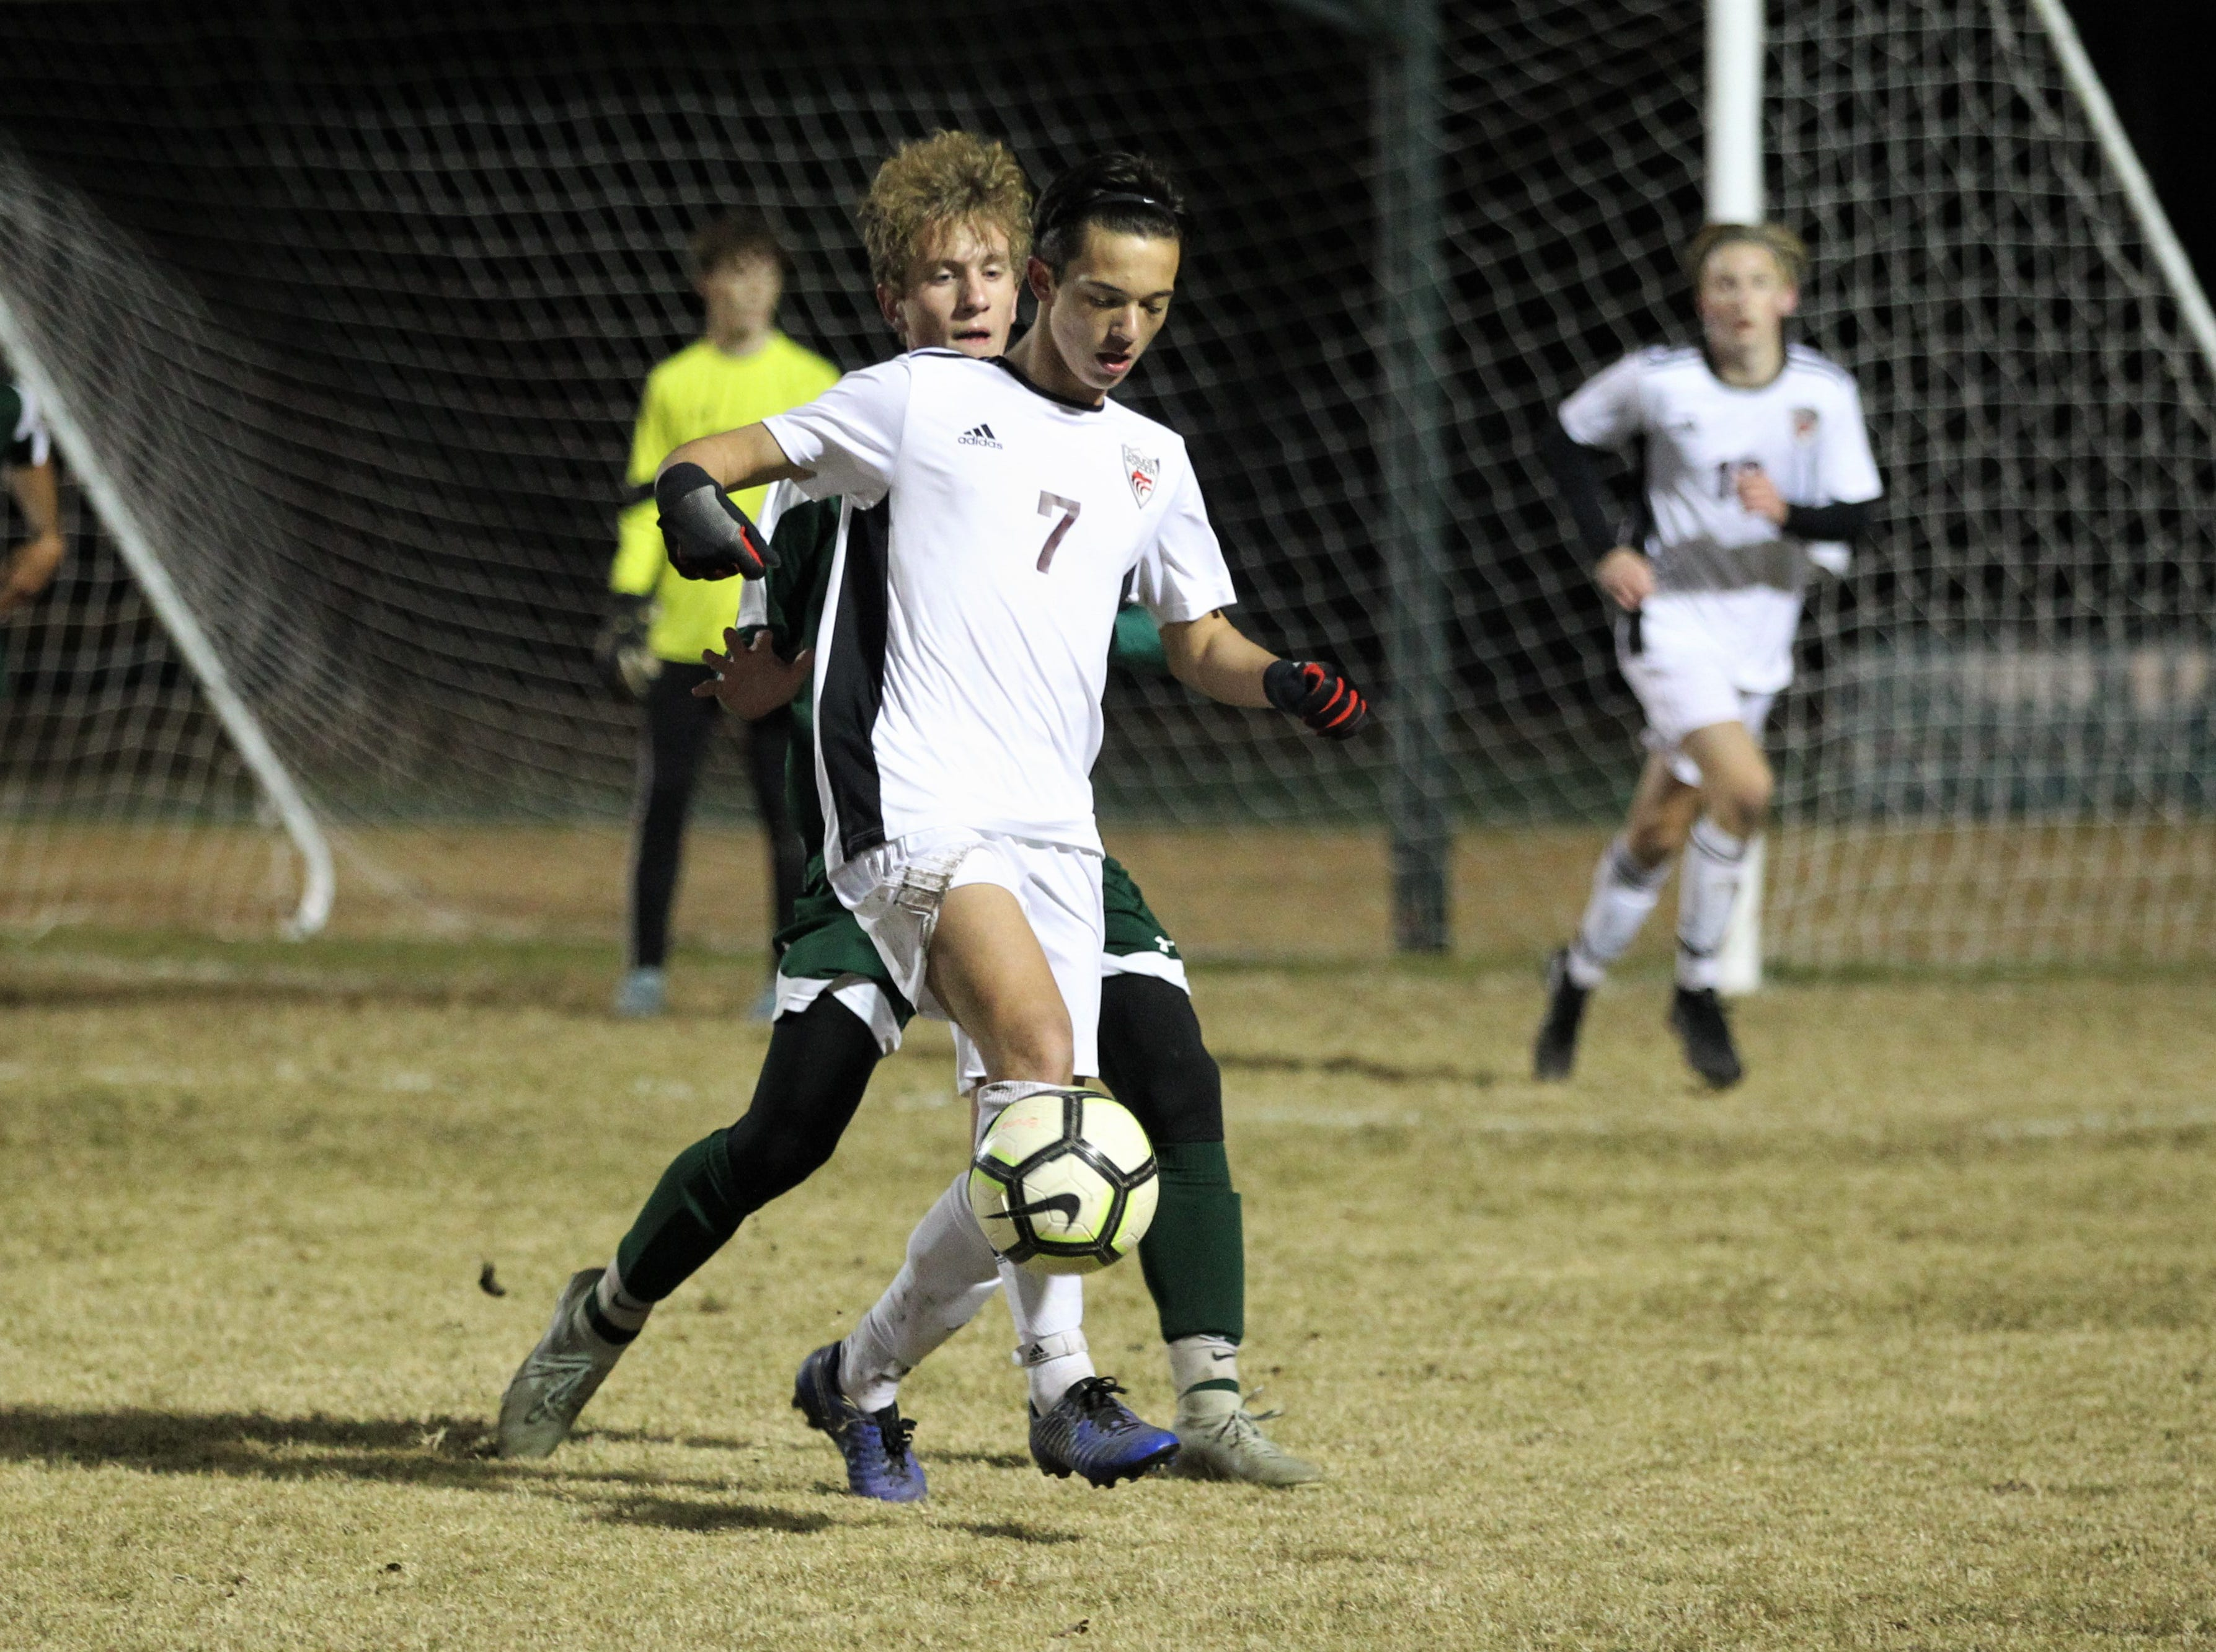 Chiles midfielder Logan Thompson dribbles with his back to goal as Chiles' boys soccer team beat Lincoln 1-0 in a District 2-4A semifinal on Jan. 30, 2019.